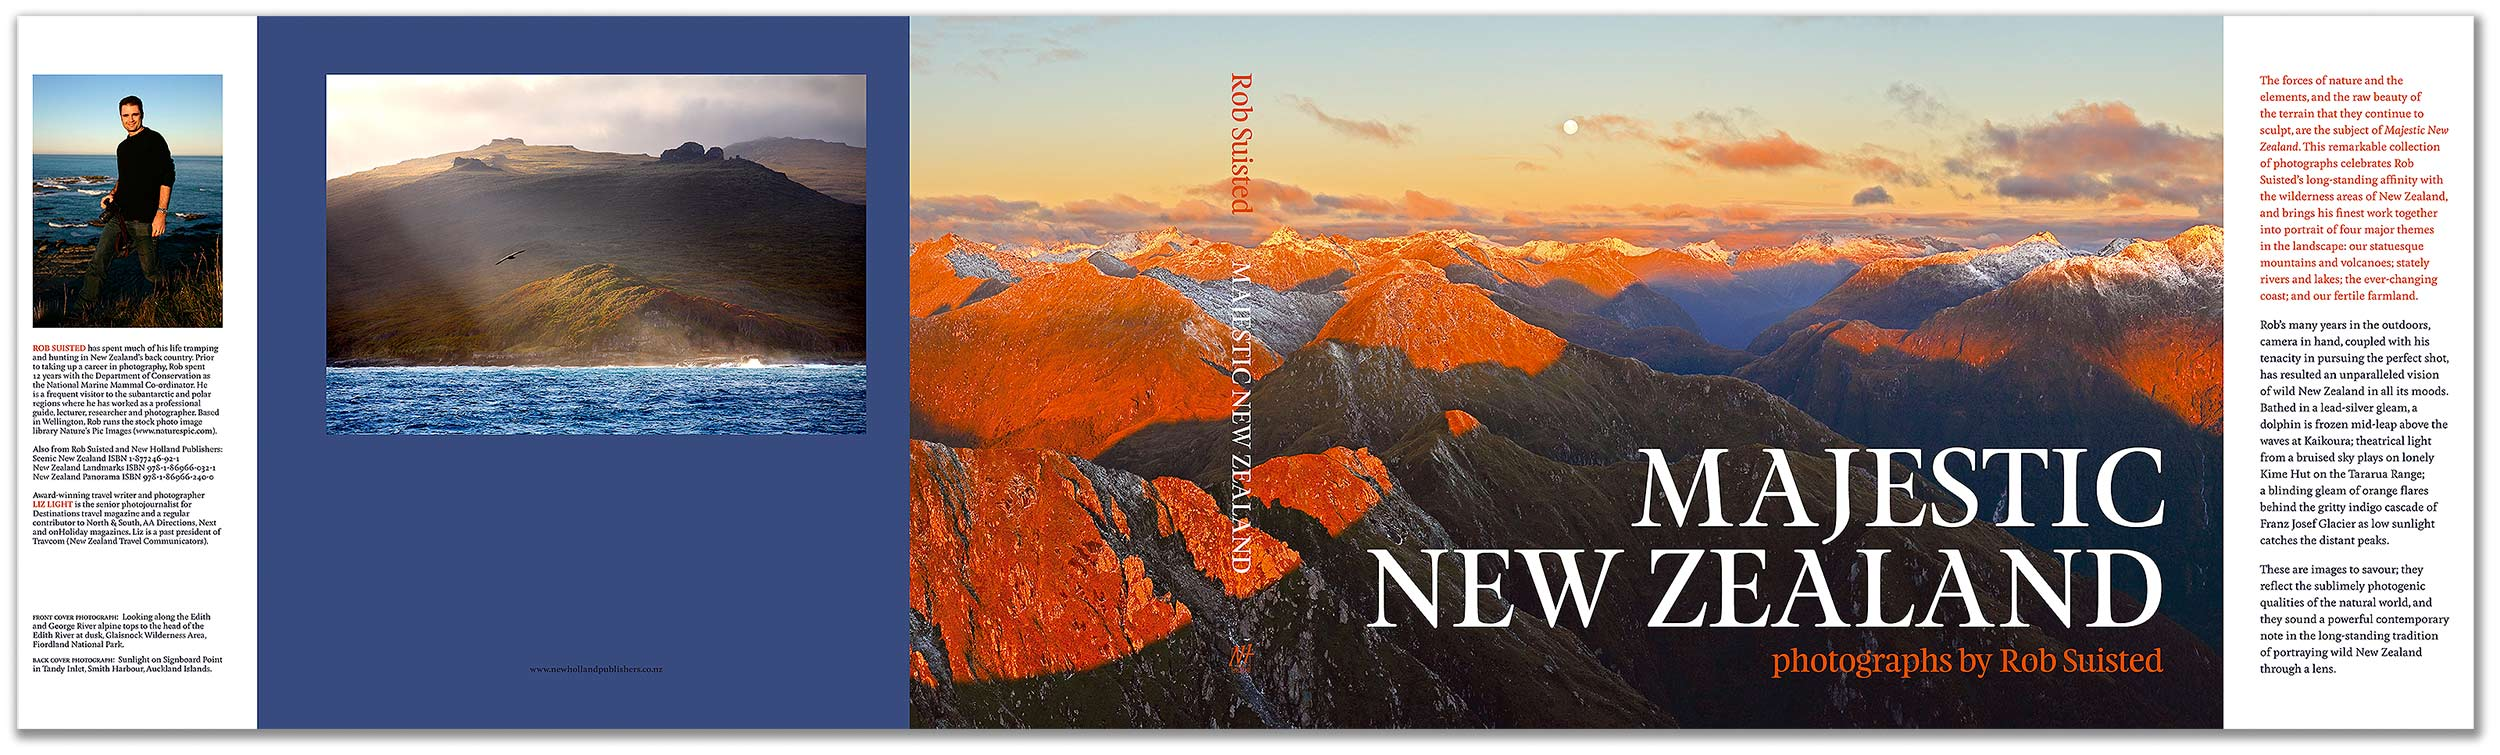 Book Covers Nz ~ Coffee table book of new zealand by rob suisted well